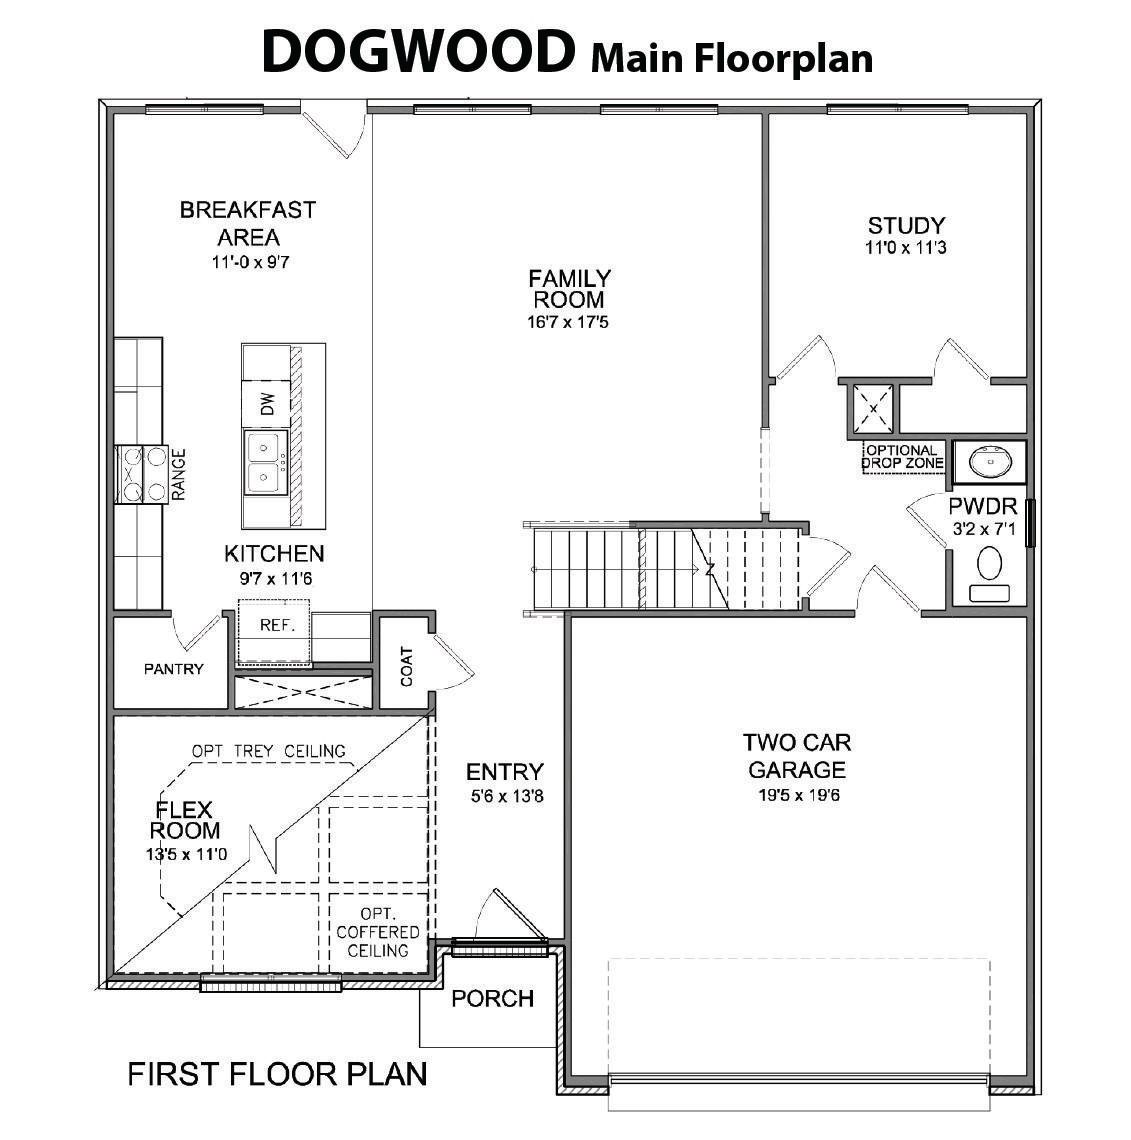 Dogwood_Main Floorplan